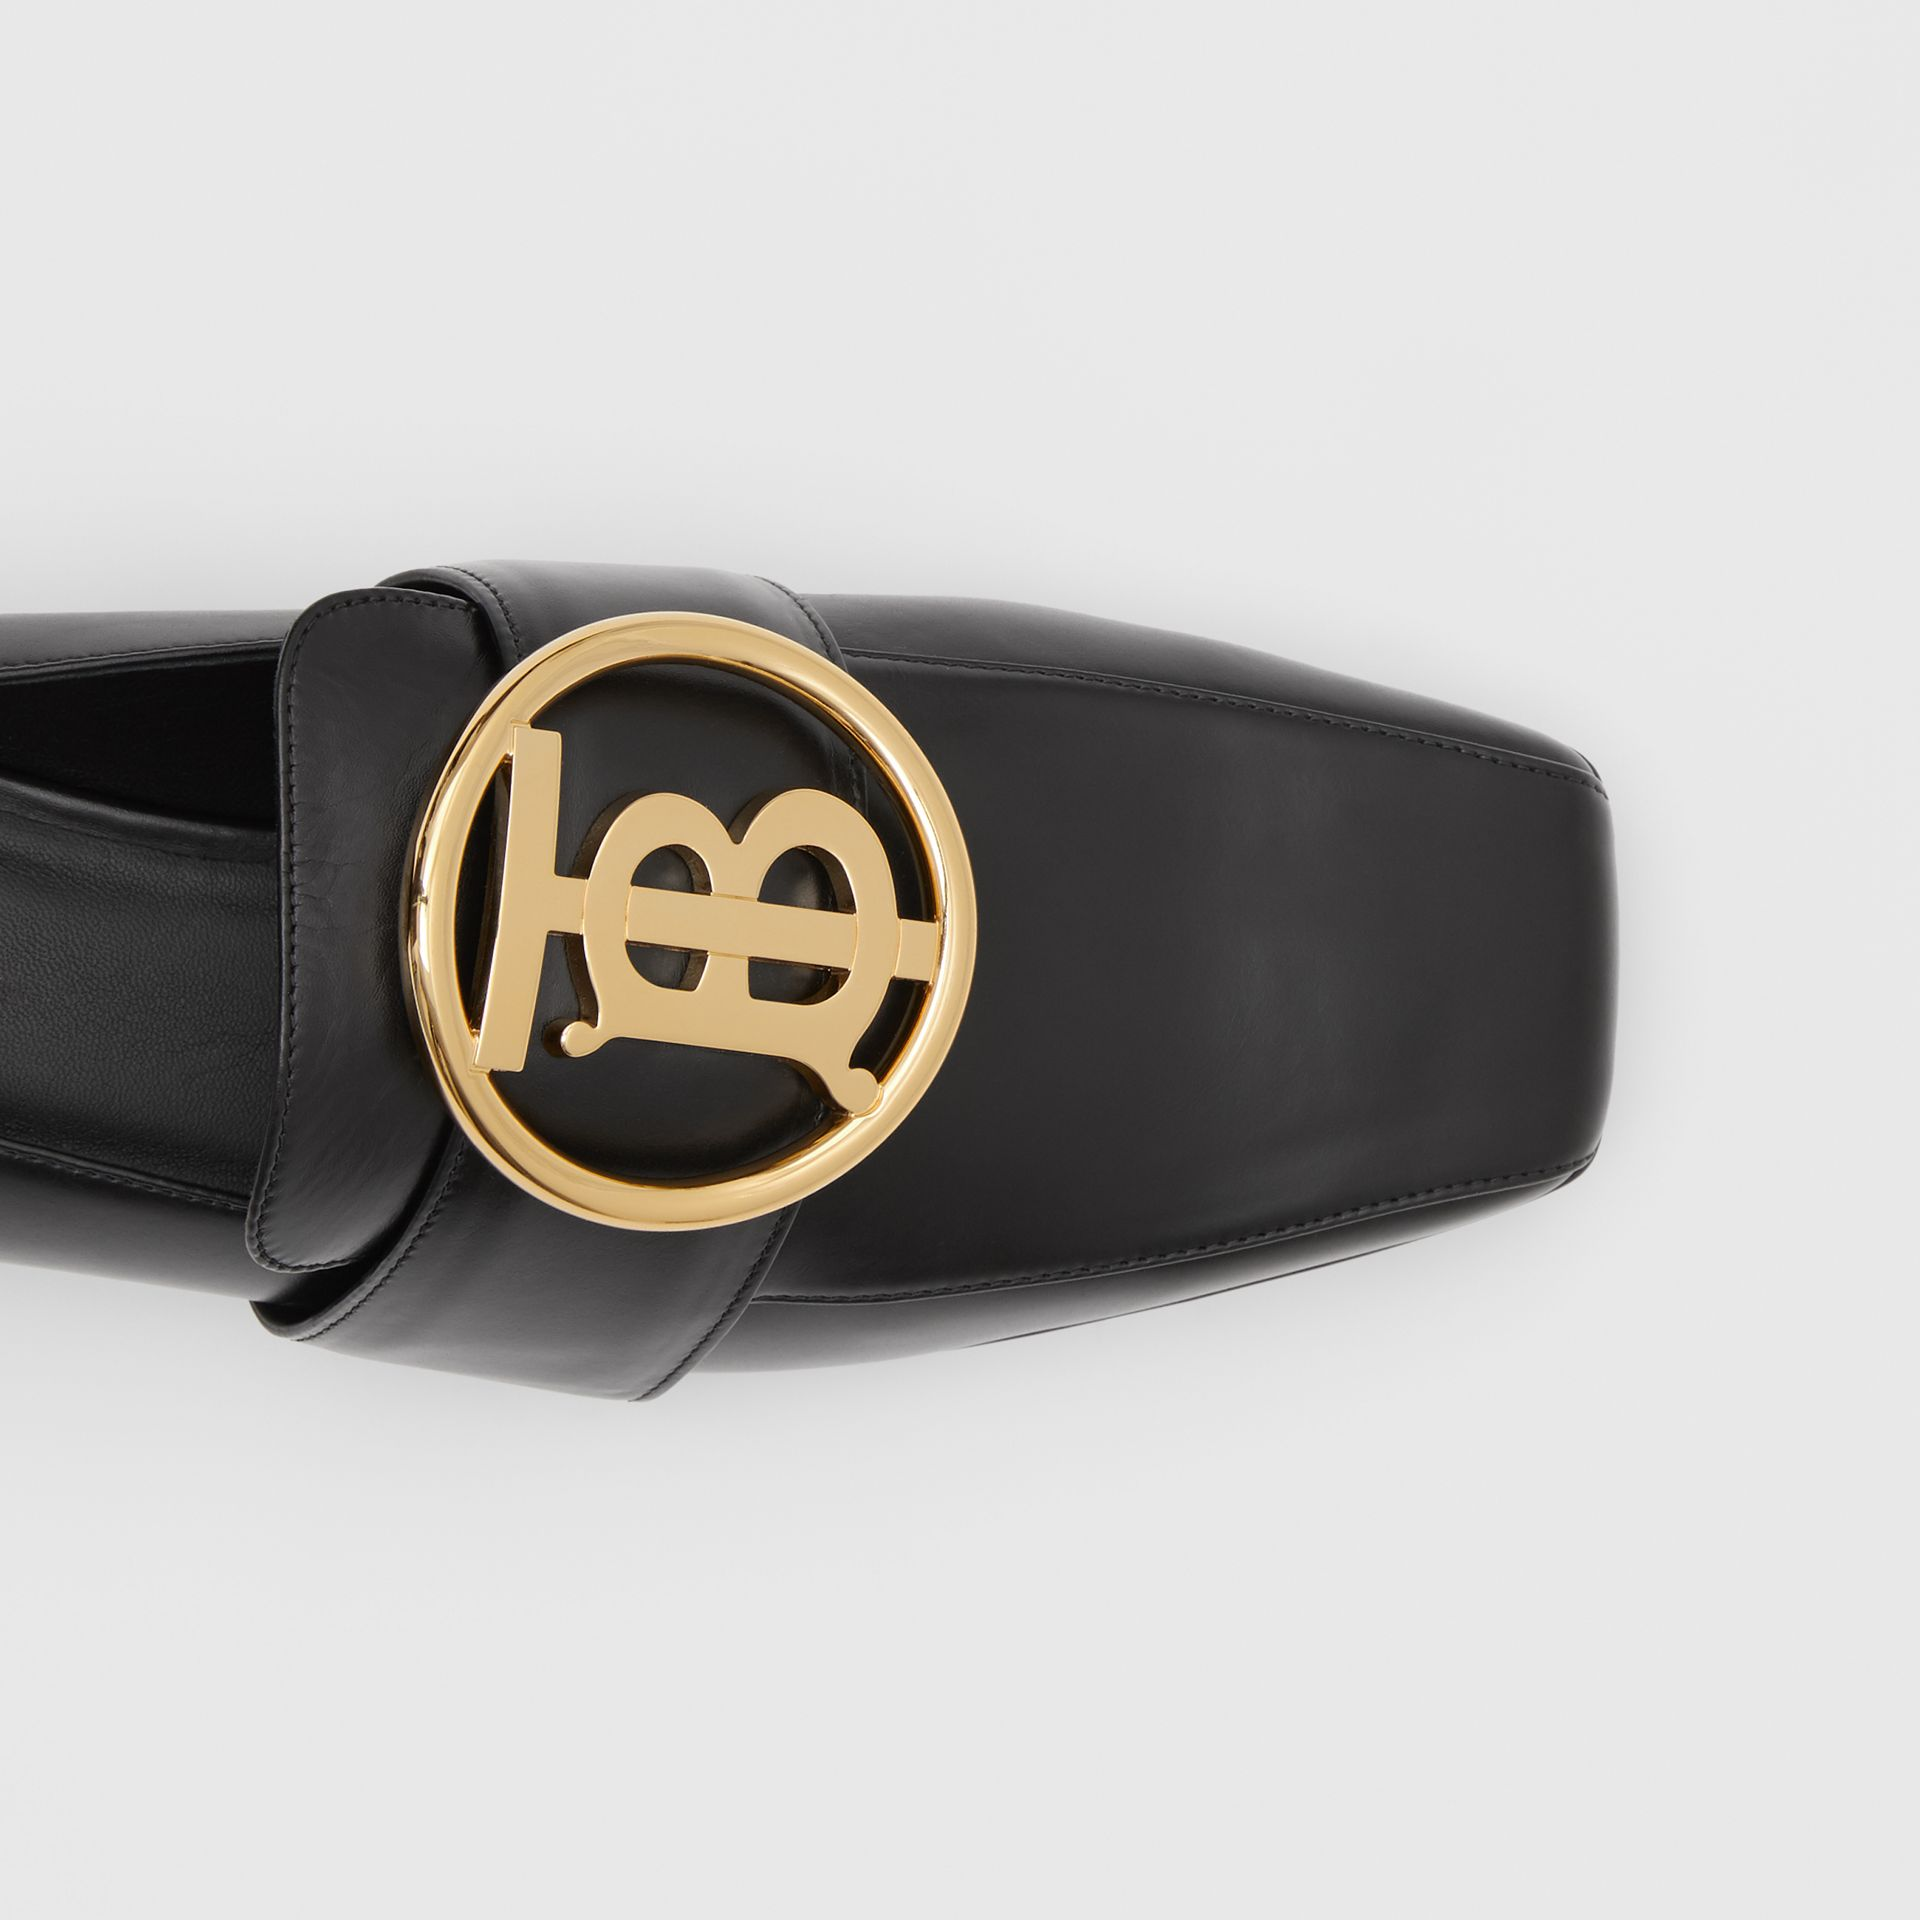 Monogram Motif Leather Loafers in Black - Women | Burberry United Kingdom - gallery image 1